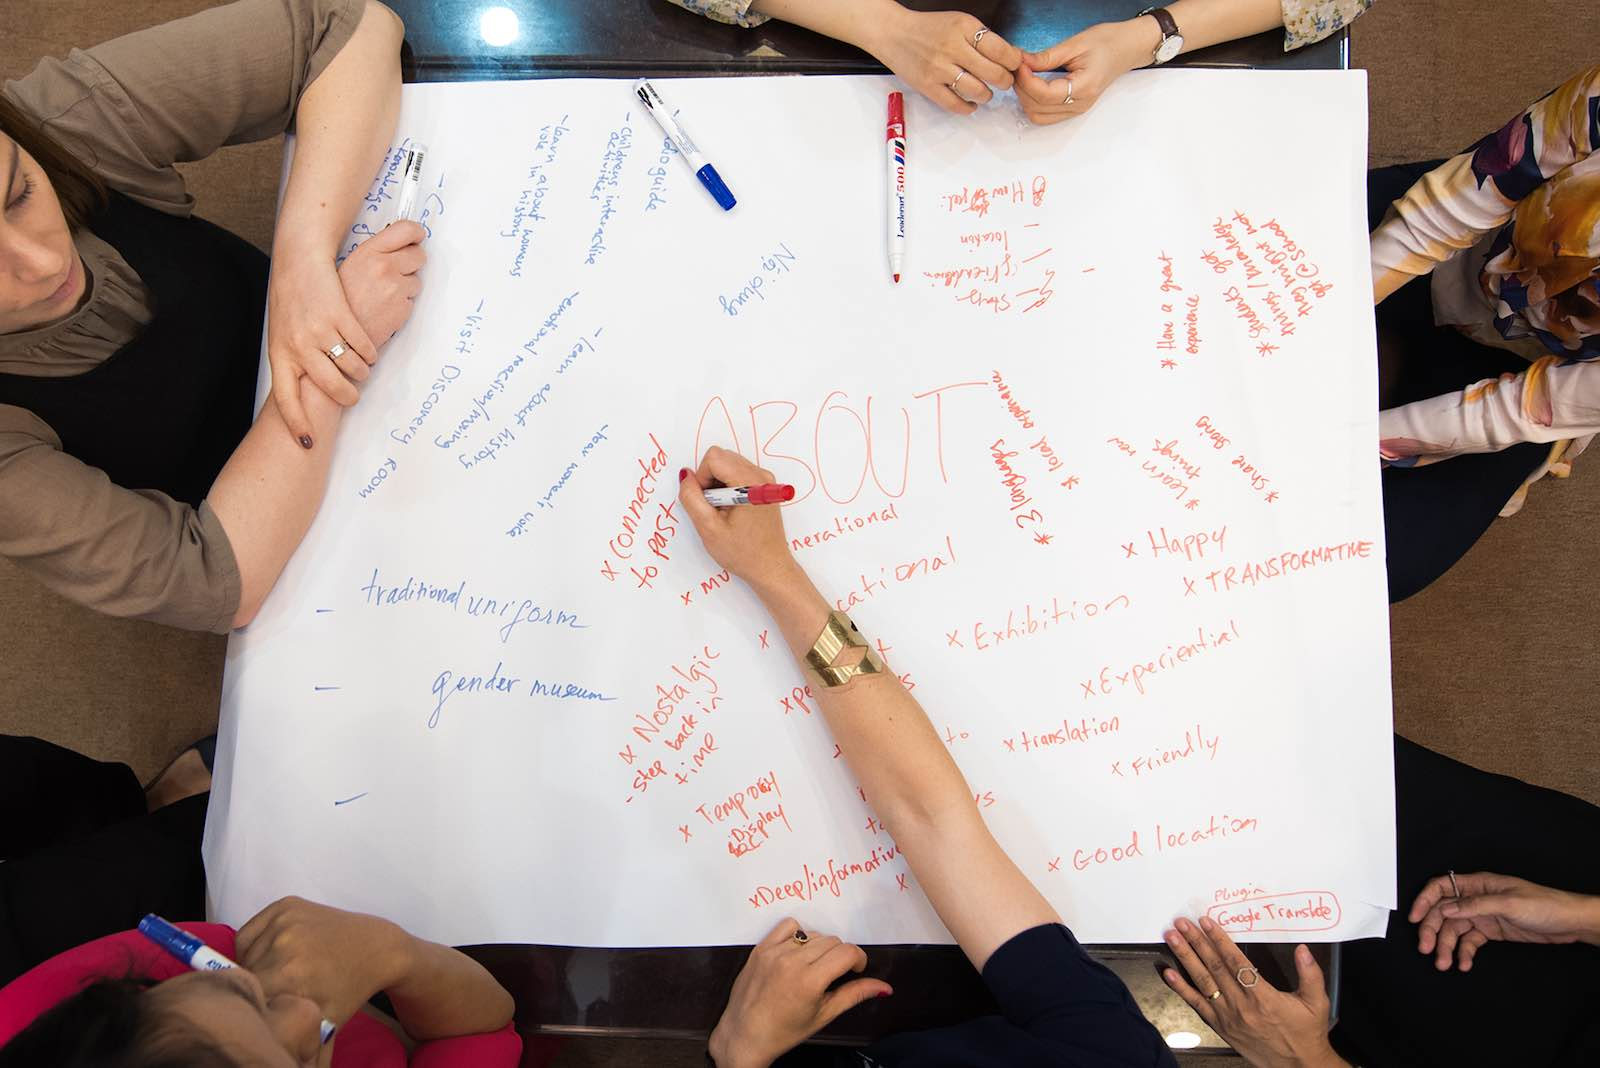 Brainstorming at a Youth Entrepreneurs and Leaders event (Social Good Outpost)